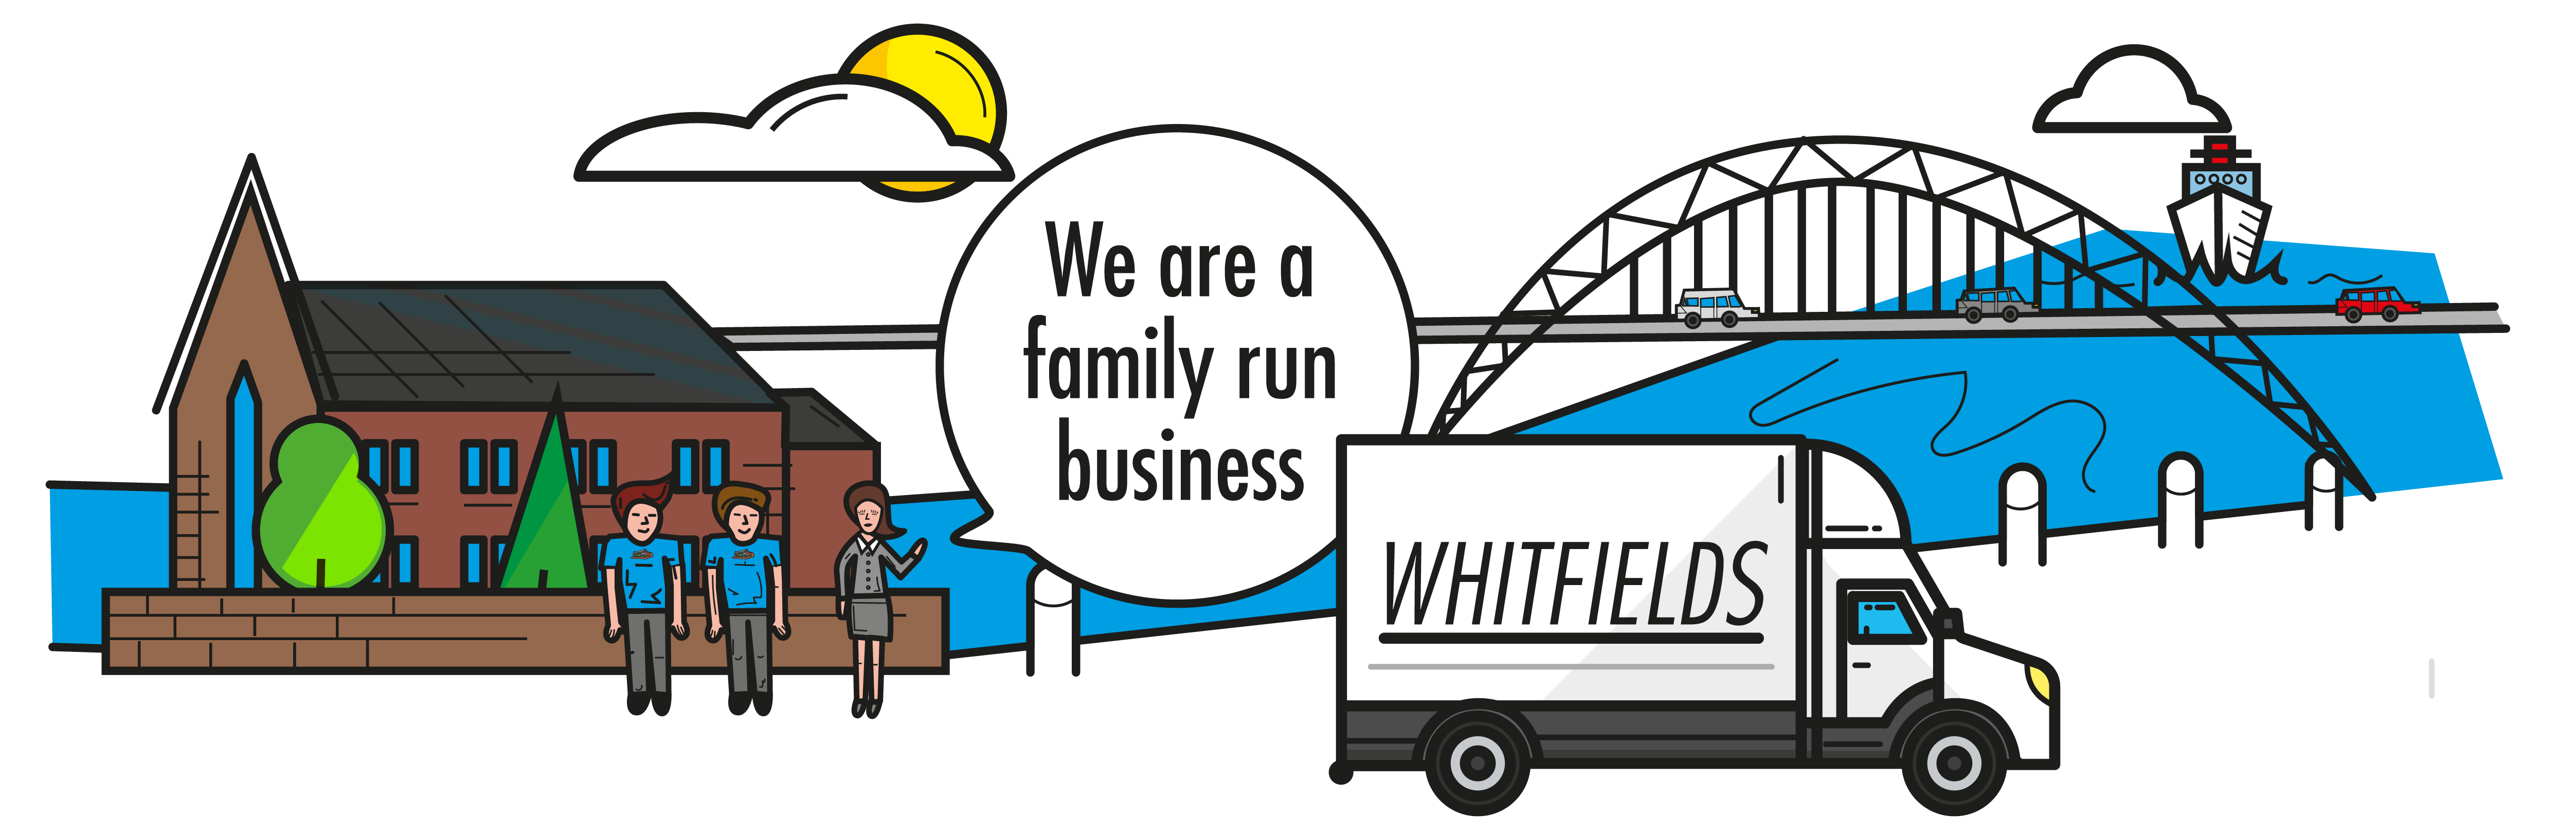 Header image showing Whitfields starting business at church